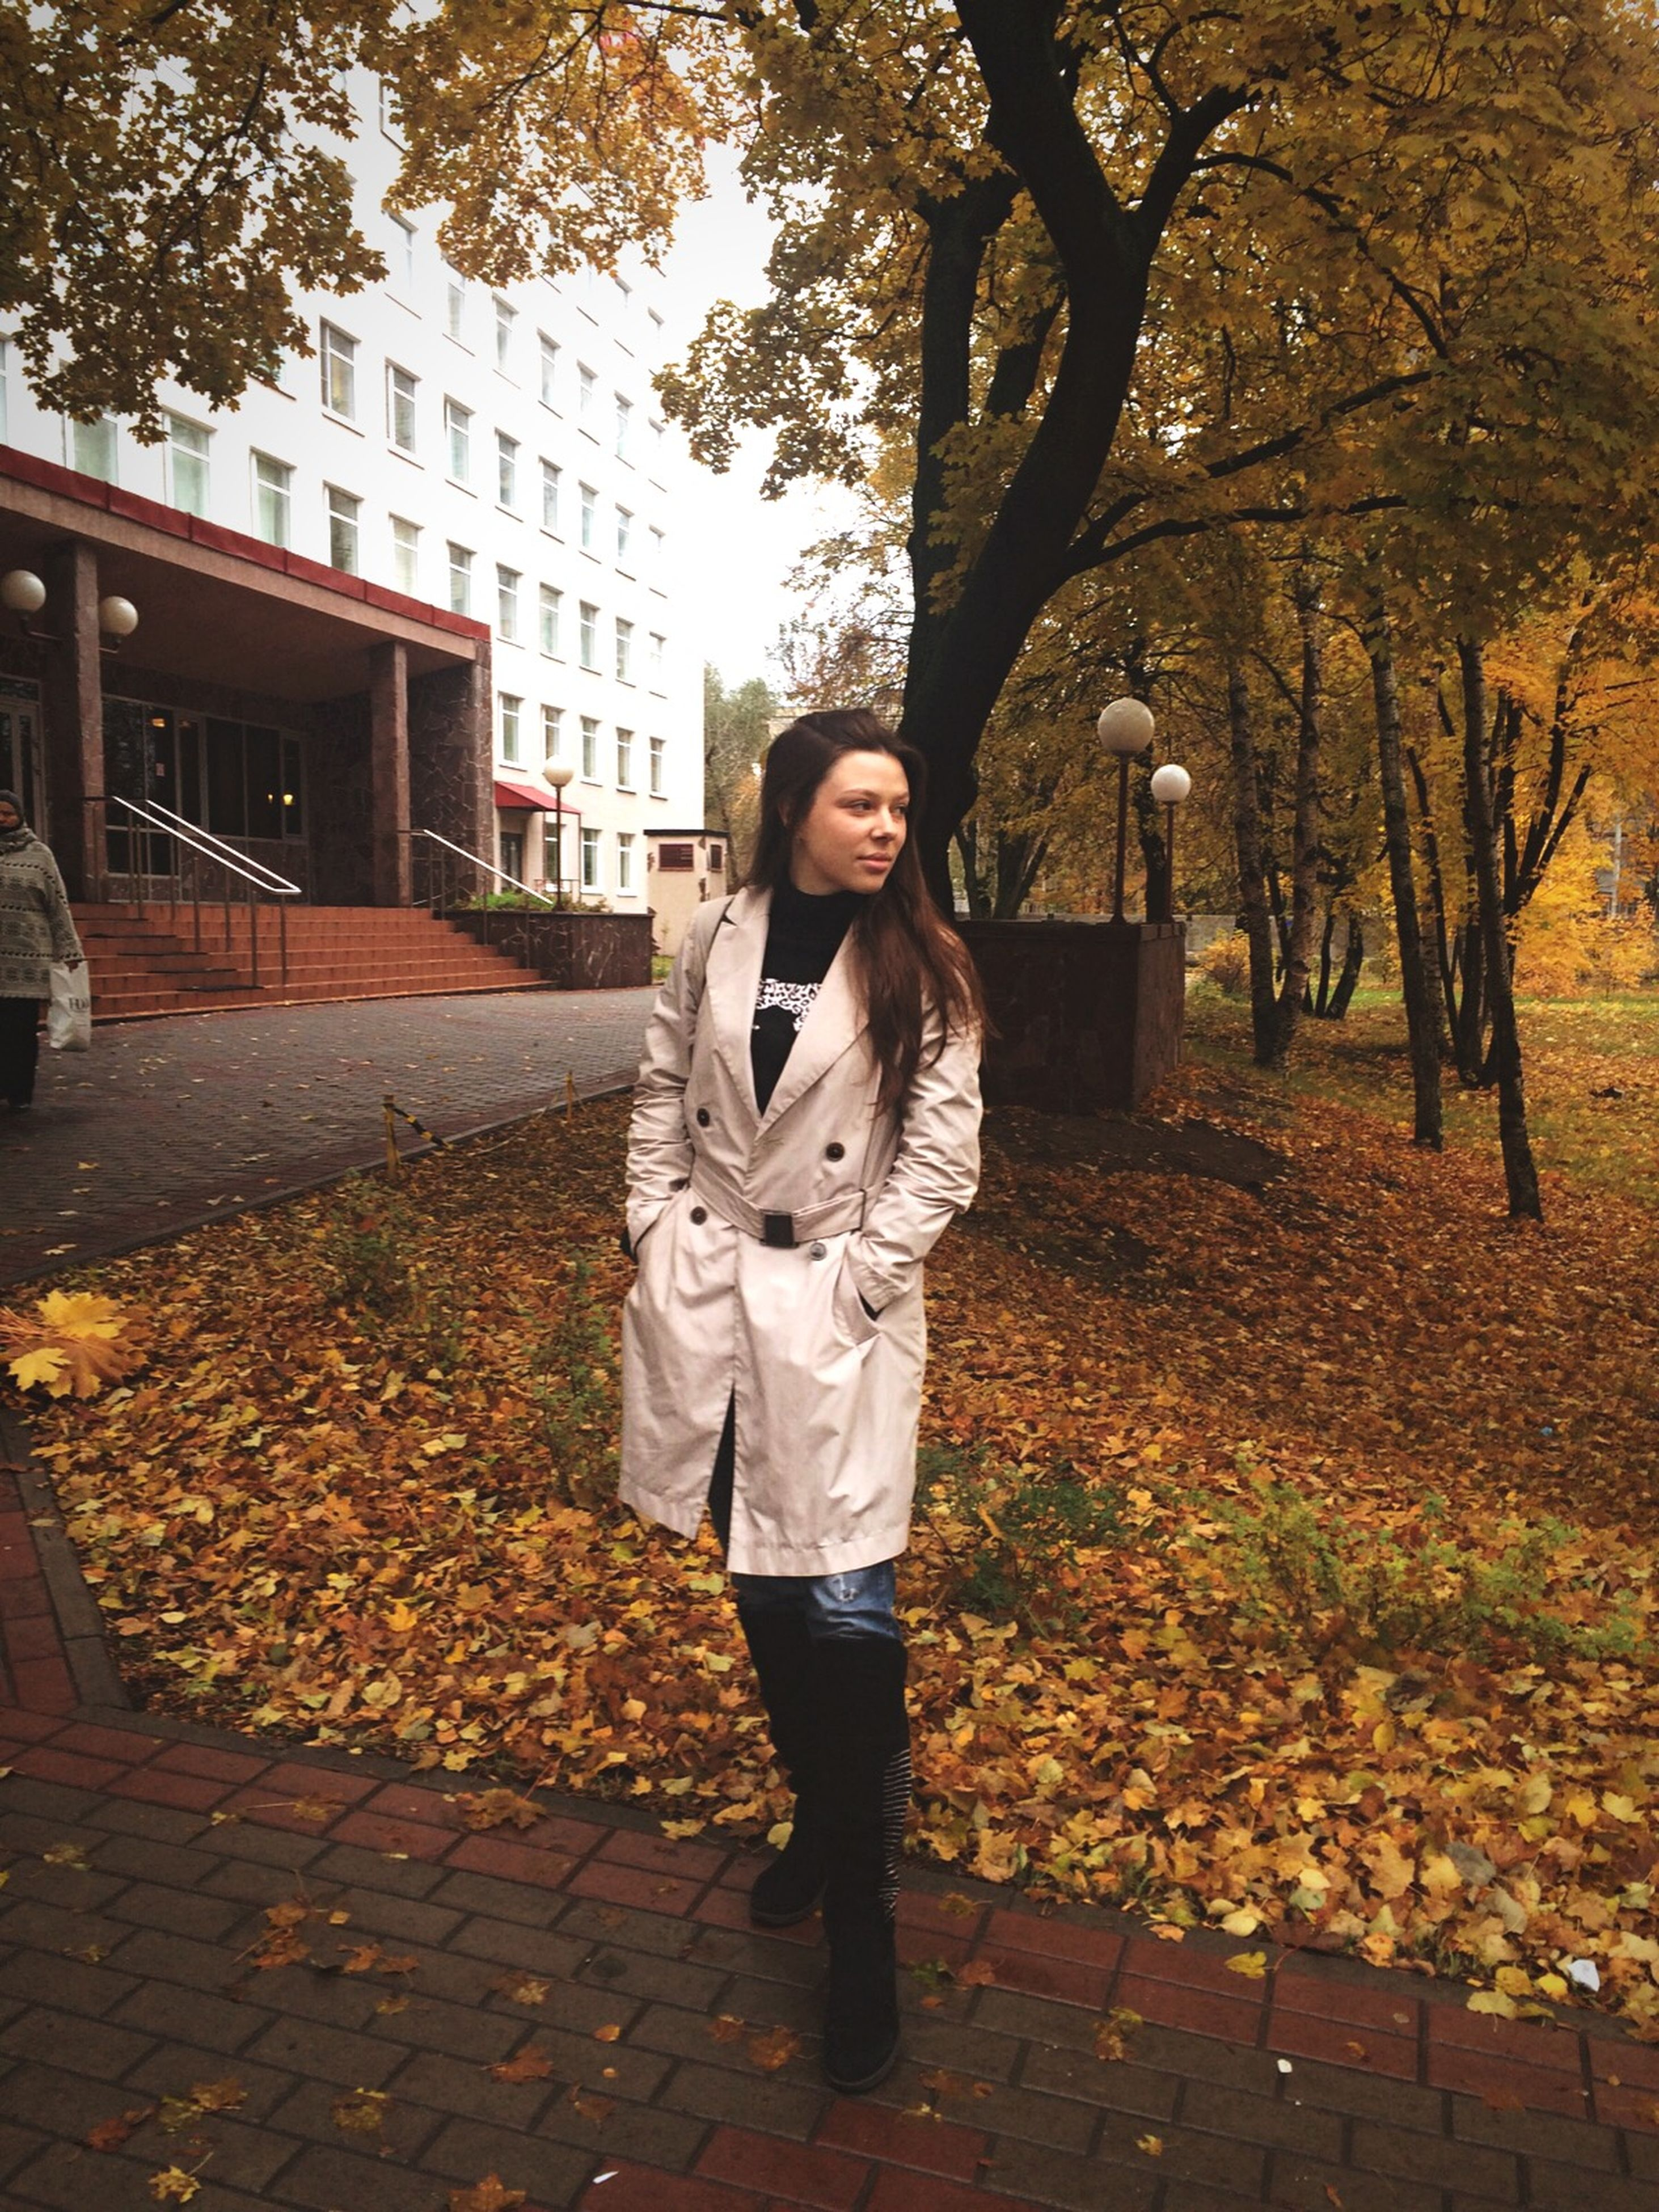 lifestyles, casual clothing, person, young adult, looking at camera, standing, front view, portrait, tree, full length, leisure activity, young women, autumn, smiling, park - man made space, day, three quarter length, outdoors